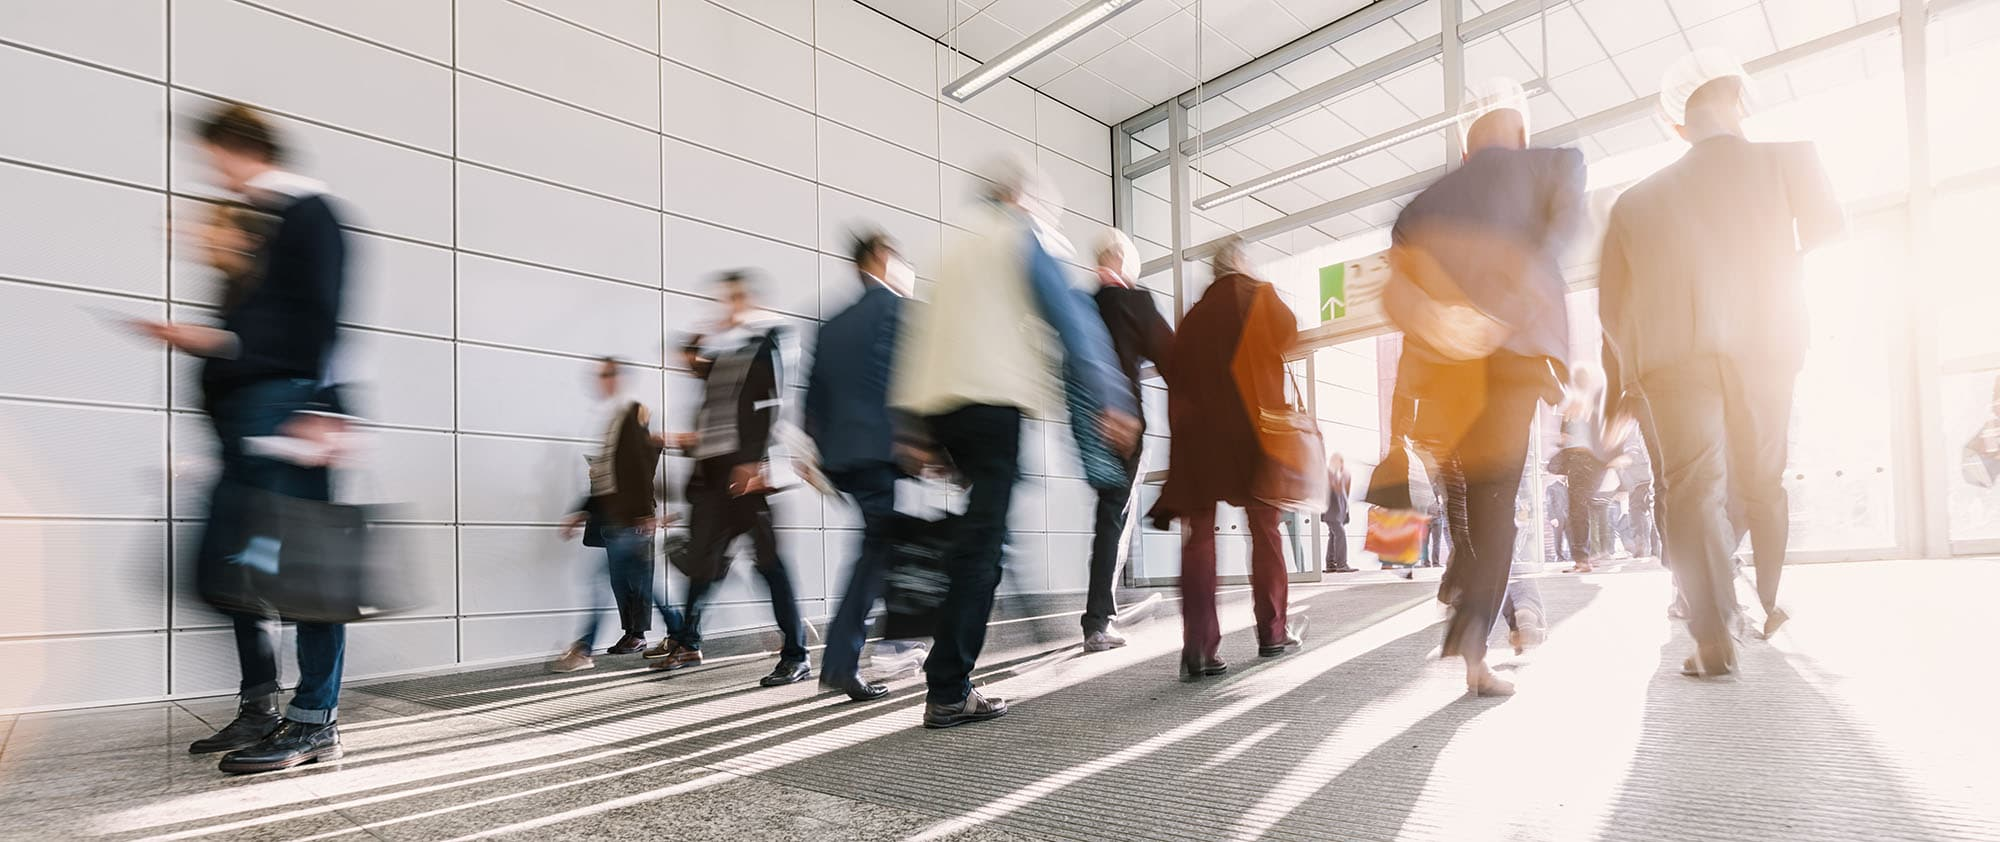 stock image of a dozen or so blurred business people walking in and out of a bright modern building`